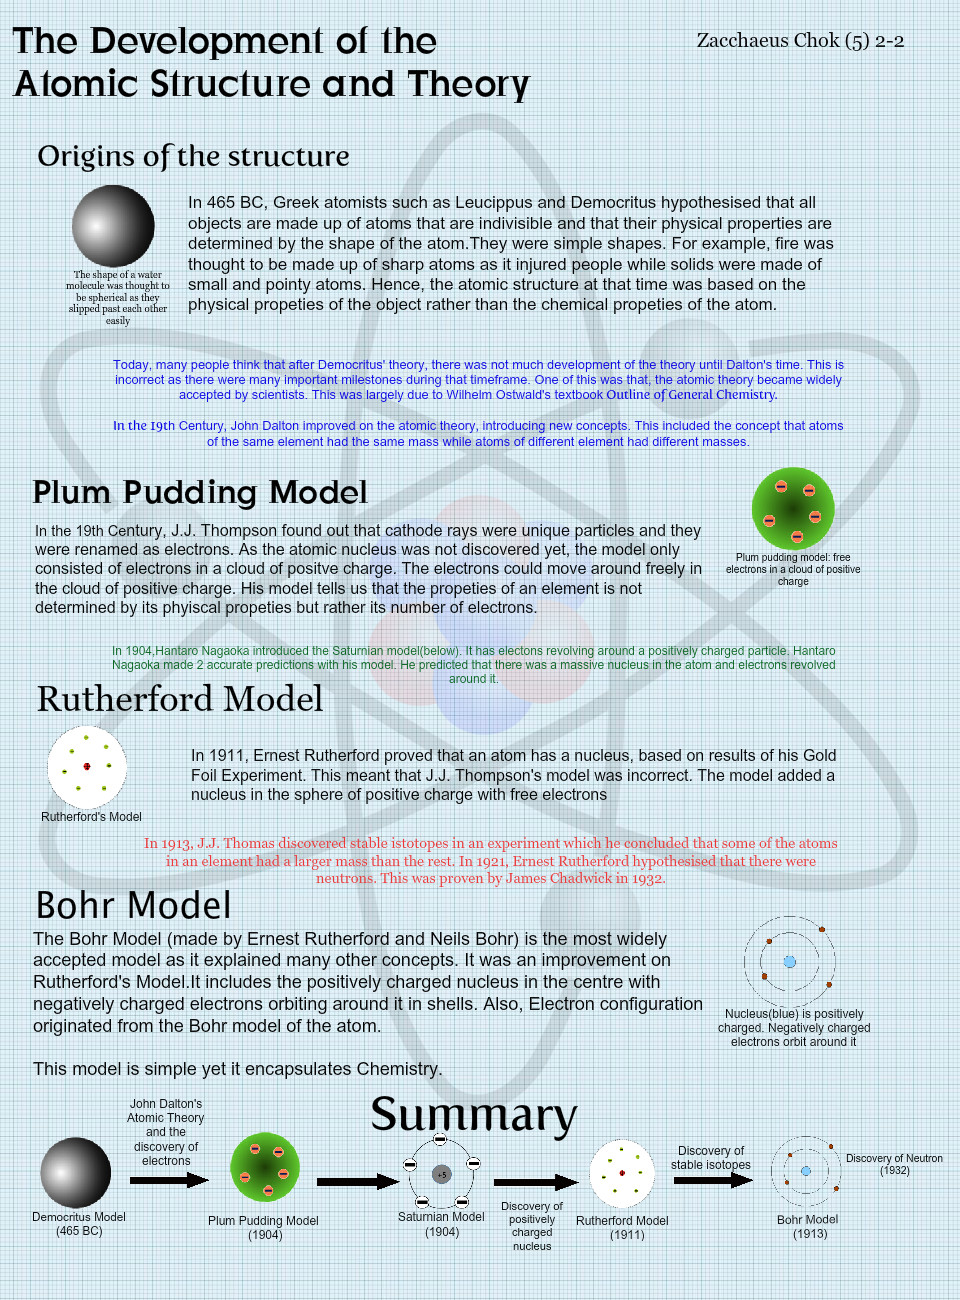 The Development of the Atomic Structure and Theory